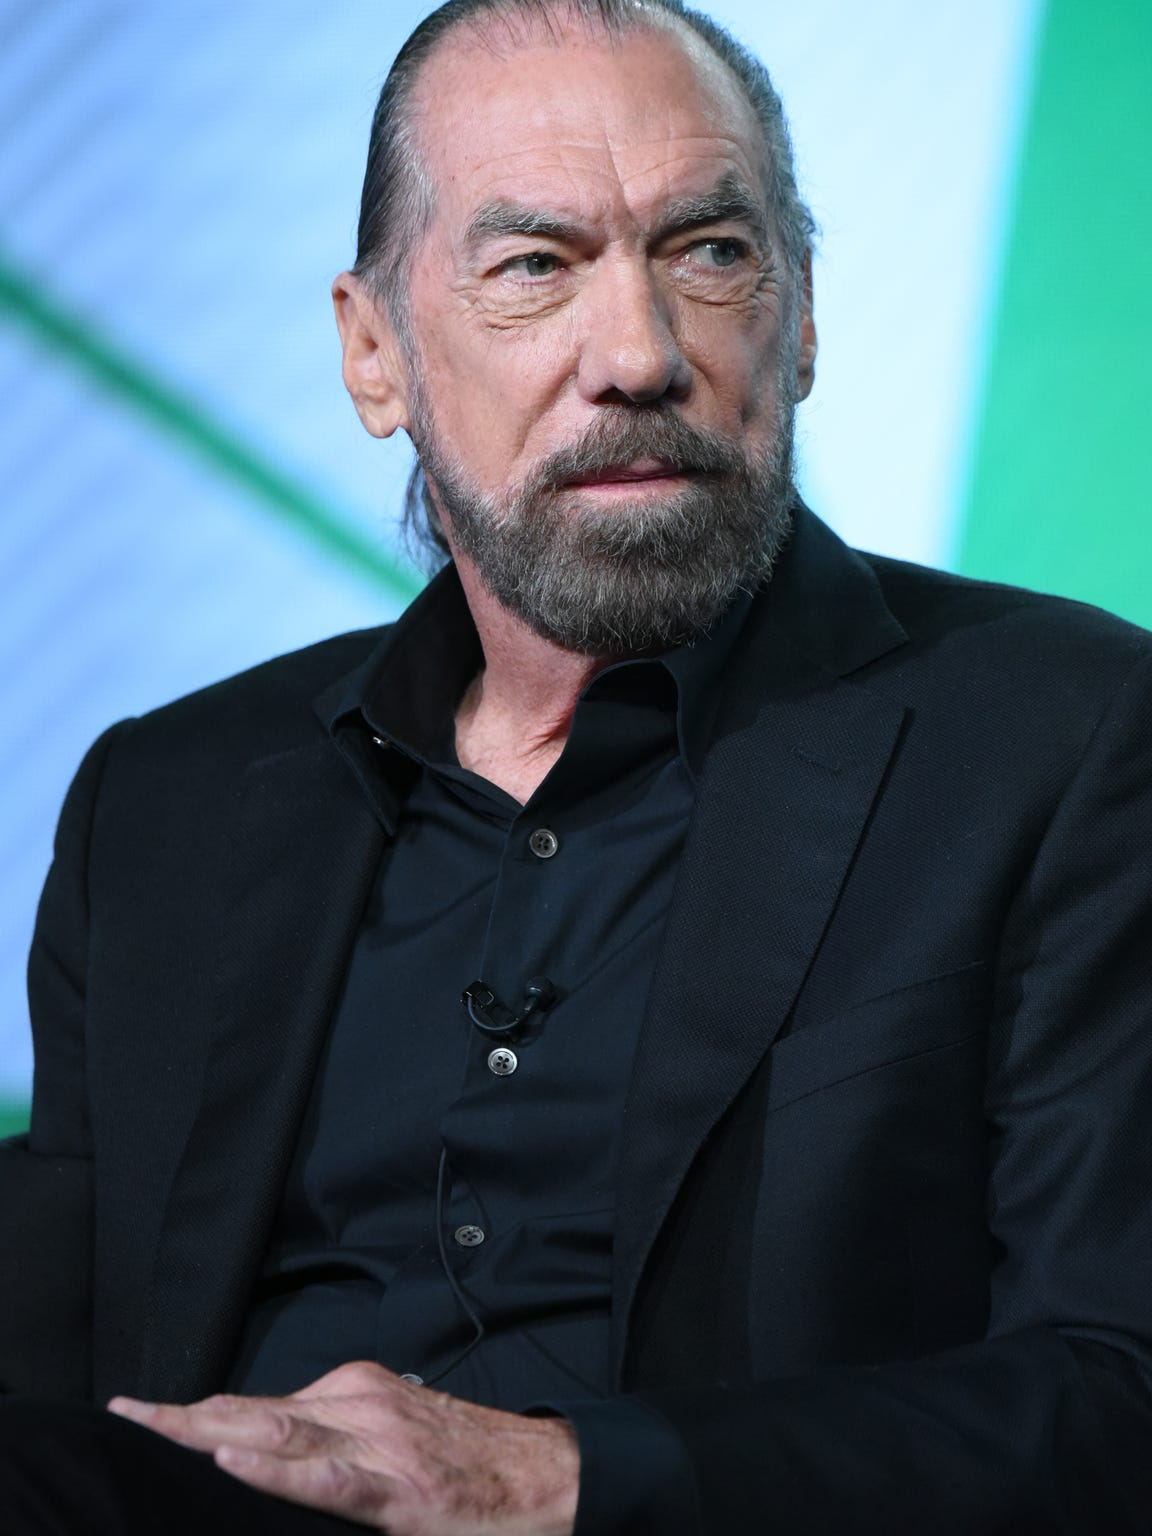 John Paul DeJoria is a co-defendant in a lawsuit brought against Howard Appel and Ernest Bartlett. He is pictured on a CNBC panel in 2016. (Photo by Richard Shotwell/Invision/AP)